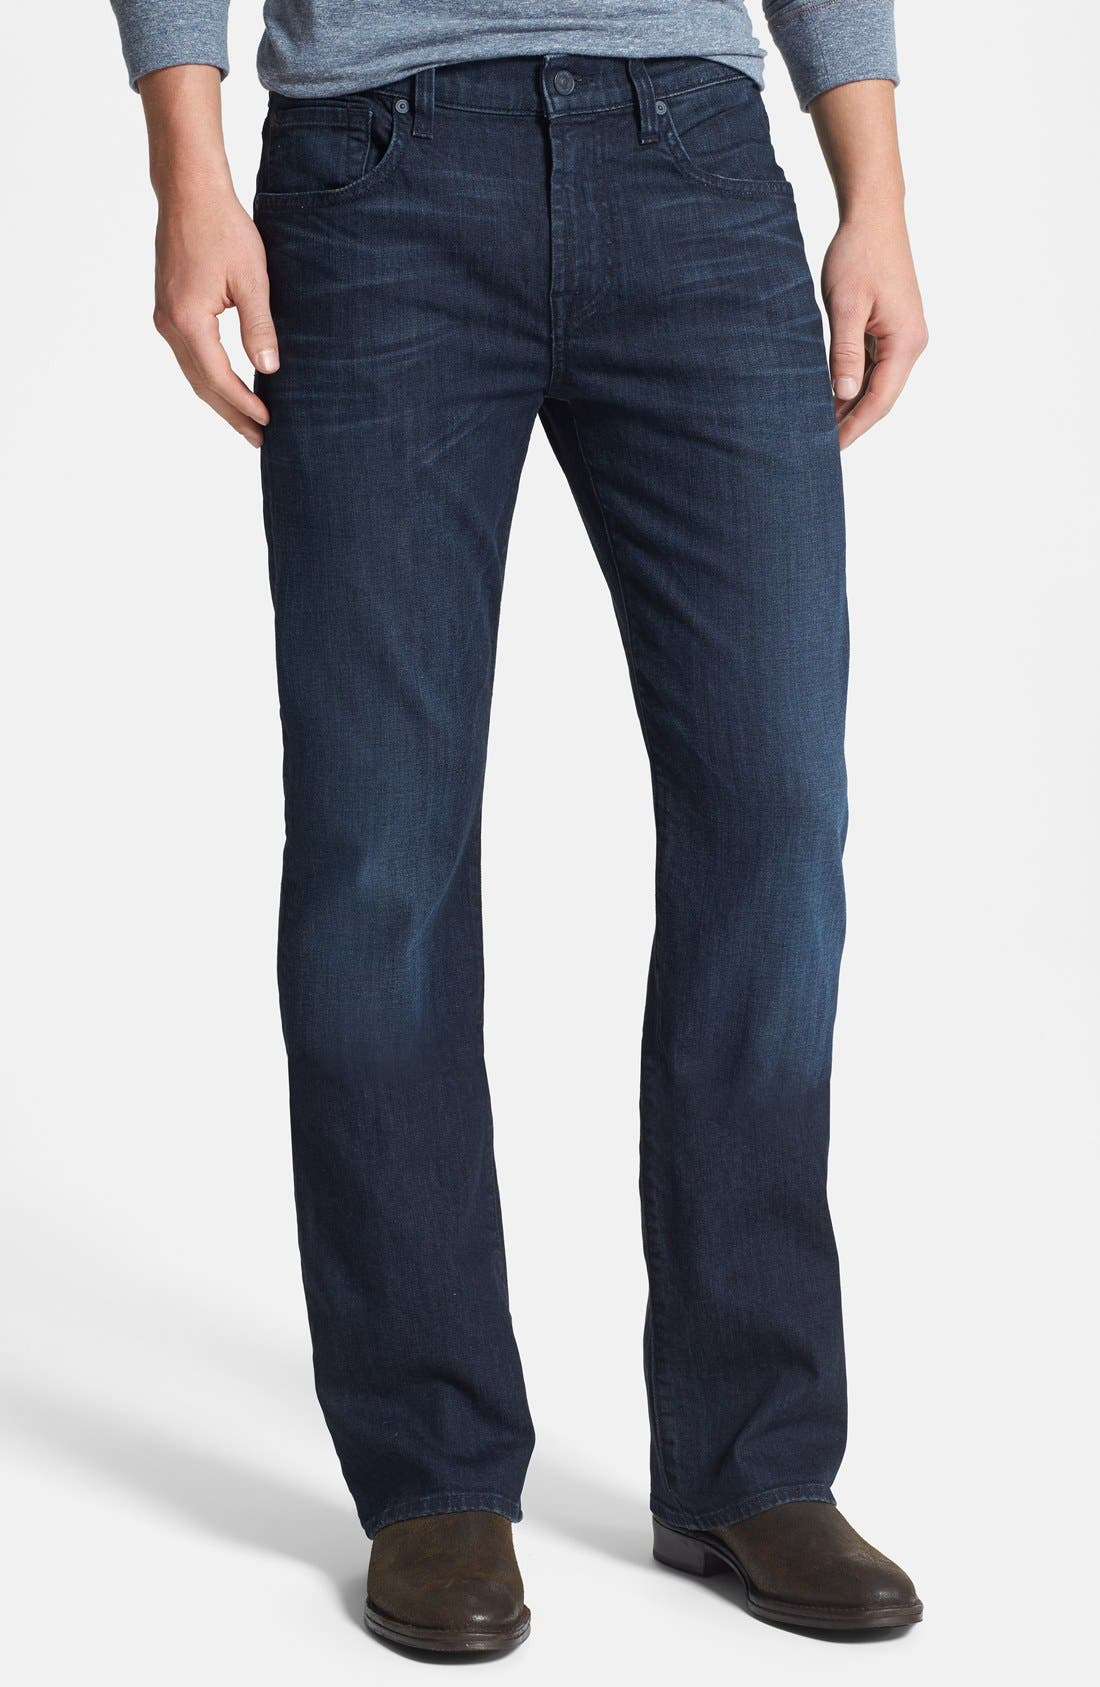 Alternate Image 1 Selected - 7 For All Mankind® 'Brett' Bootcut Jeans (Sunset Hill Blue) (Online Only)